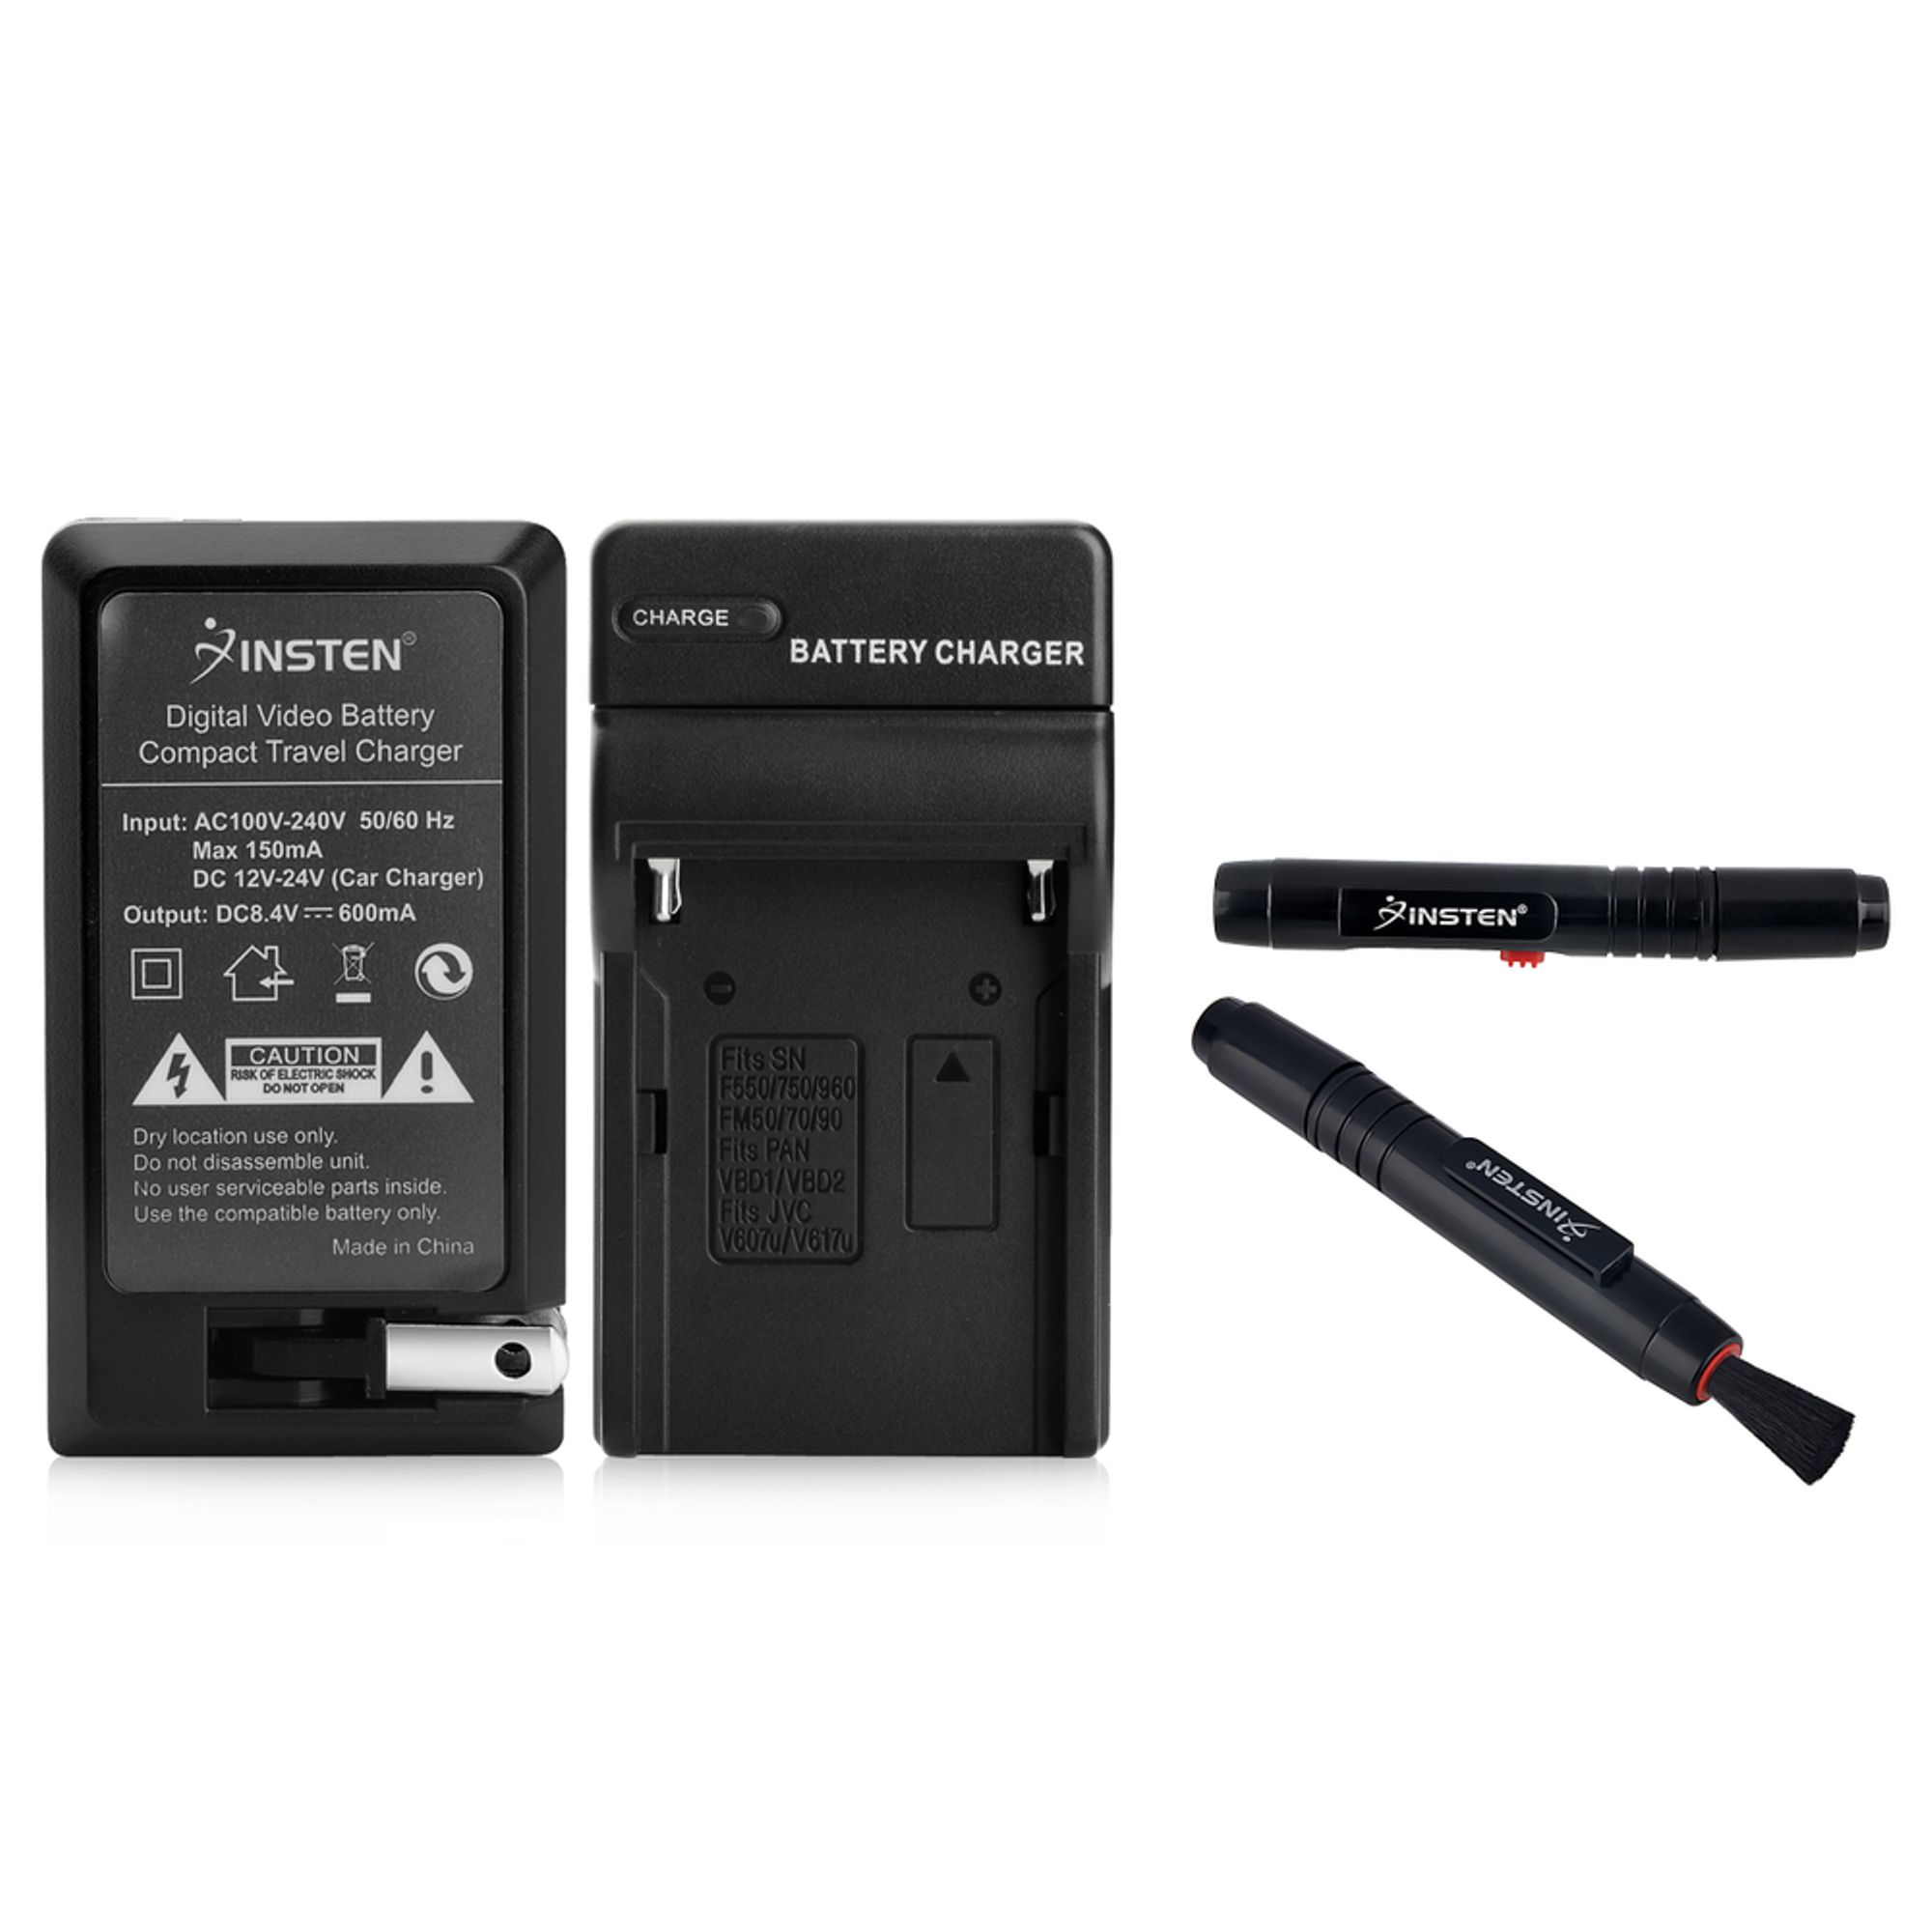 Insten WALL AC TRAVEL + CAR CHARGER FOR SONY NP-F330 BATTERY (with CLEANING LENS PEN)